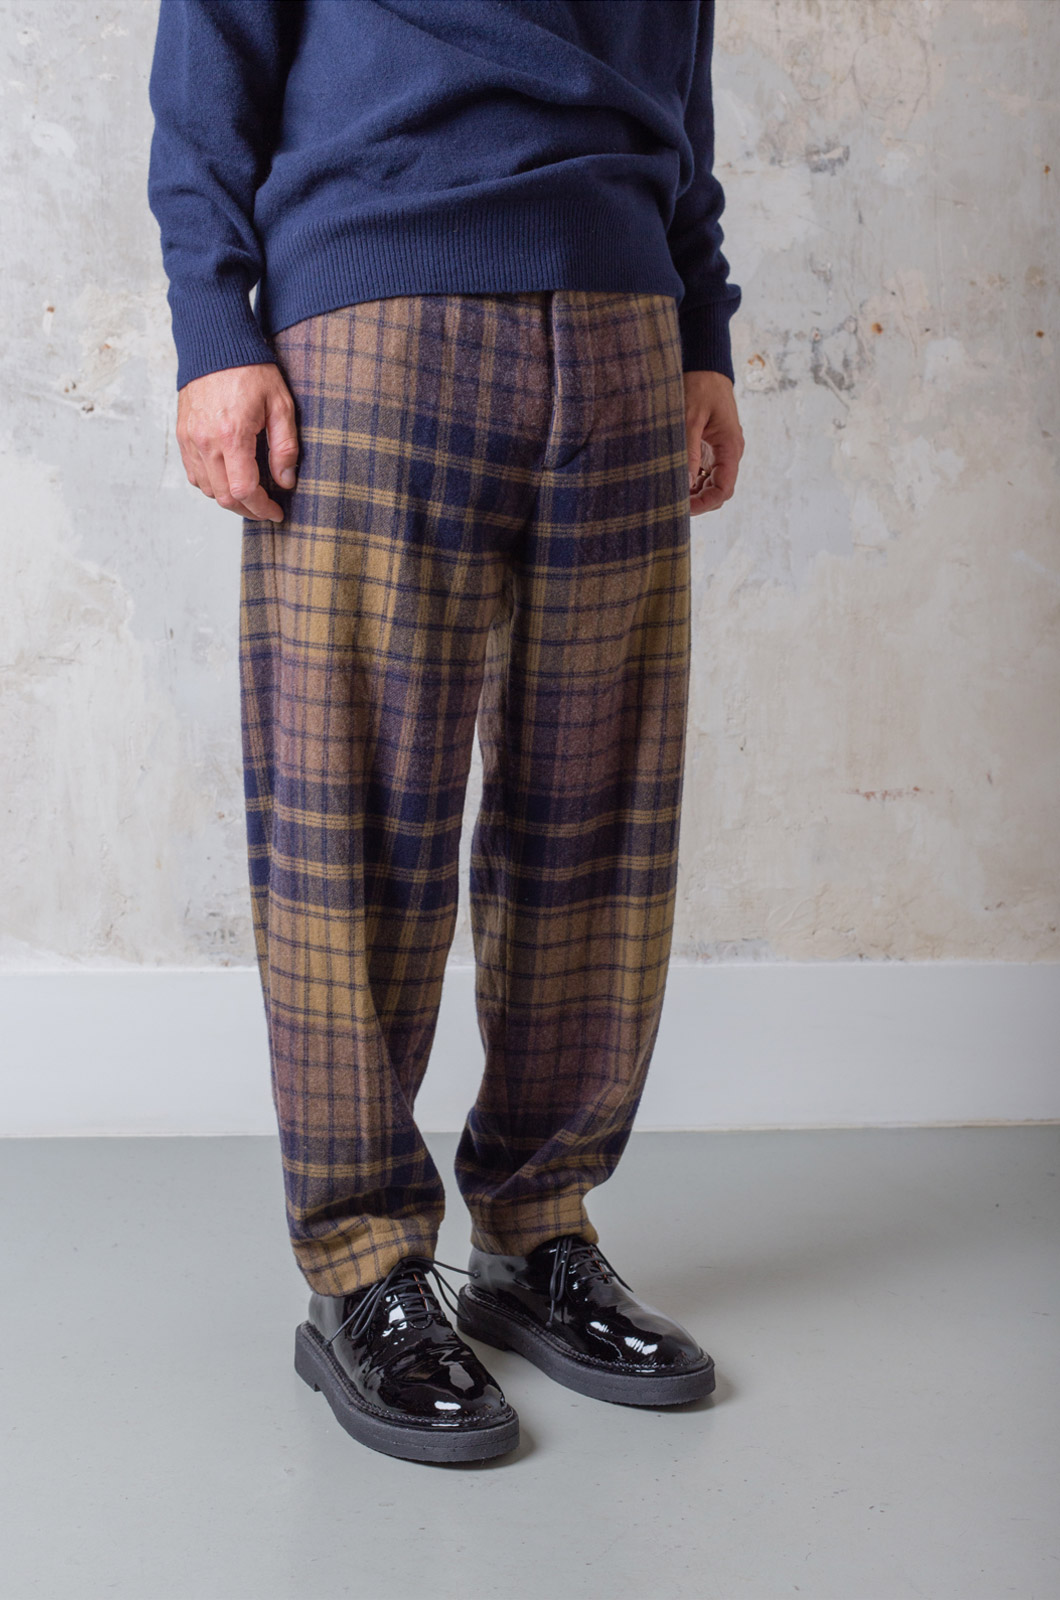 TS(S) - Pegtop Pants Large Plaid Milled - Navy Brown